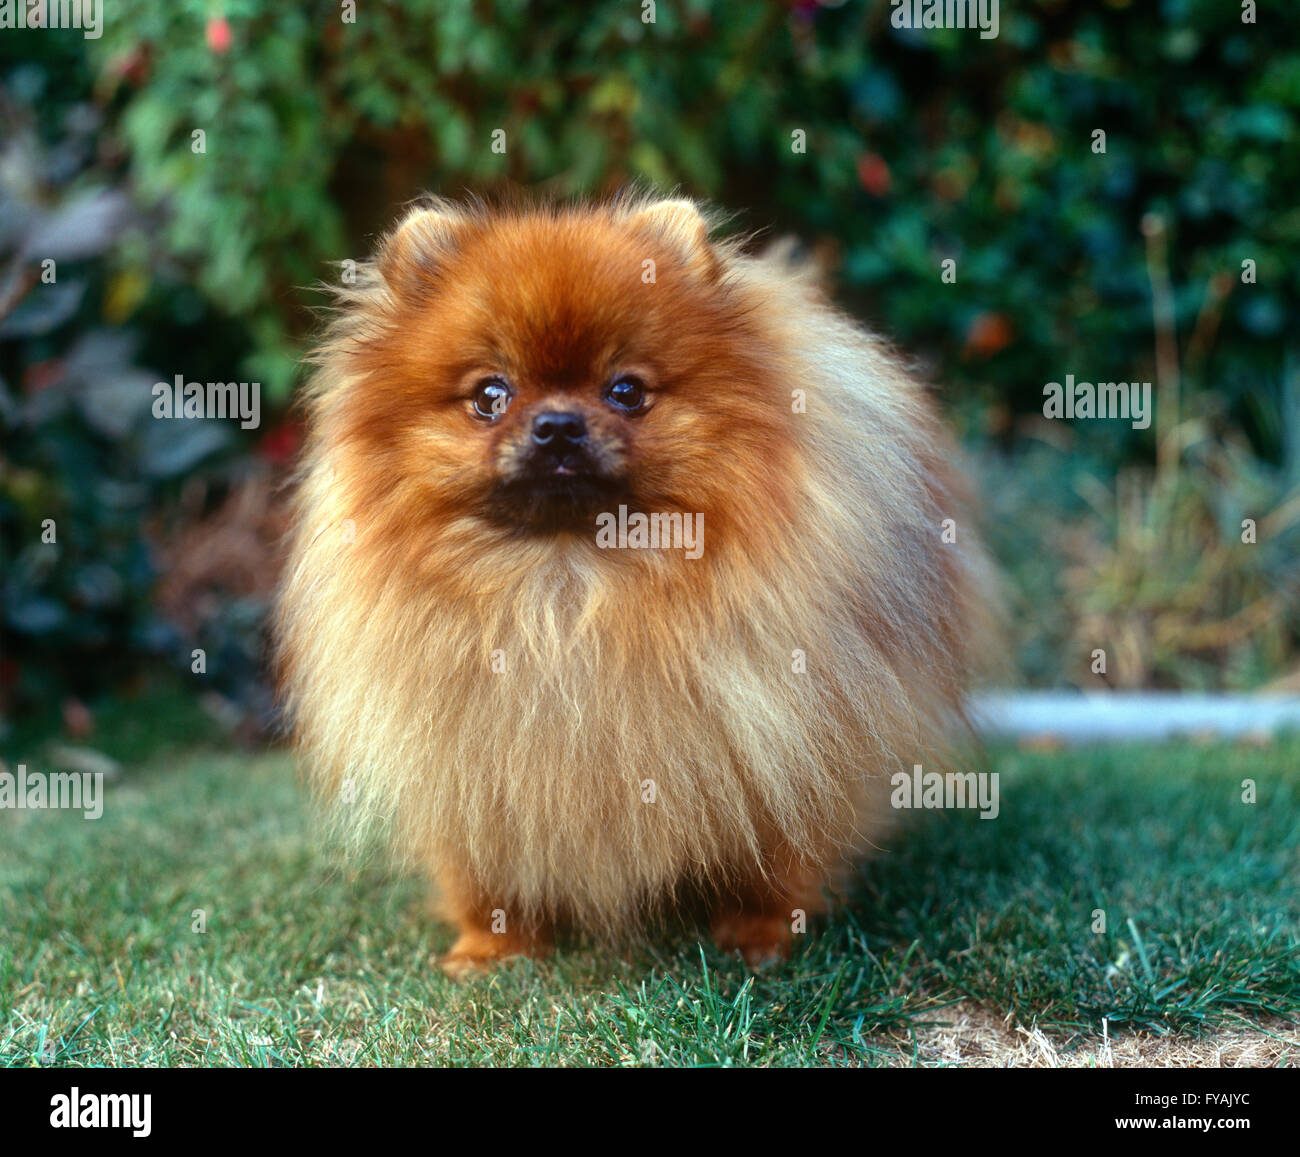 Pomeranian puppy portrait, outside. - Stock Image